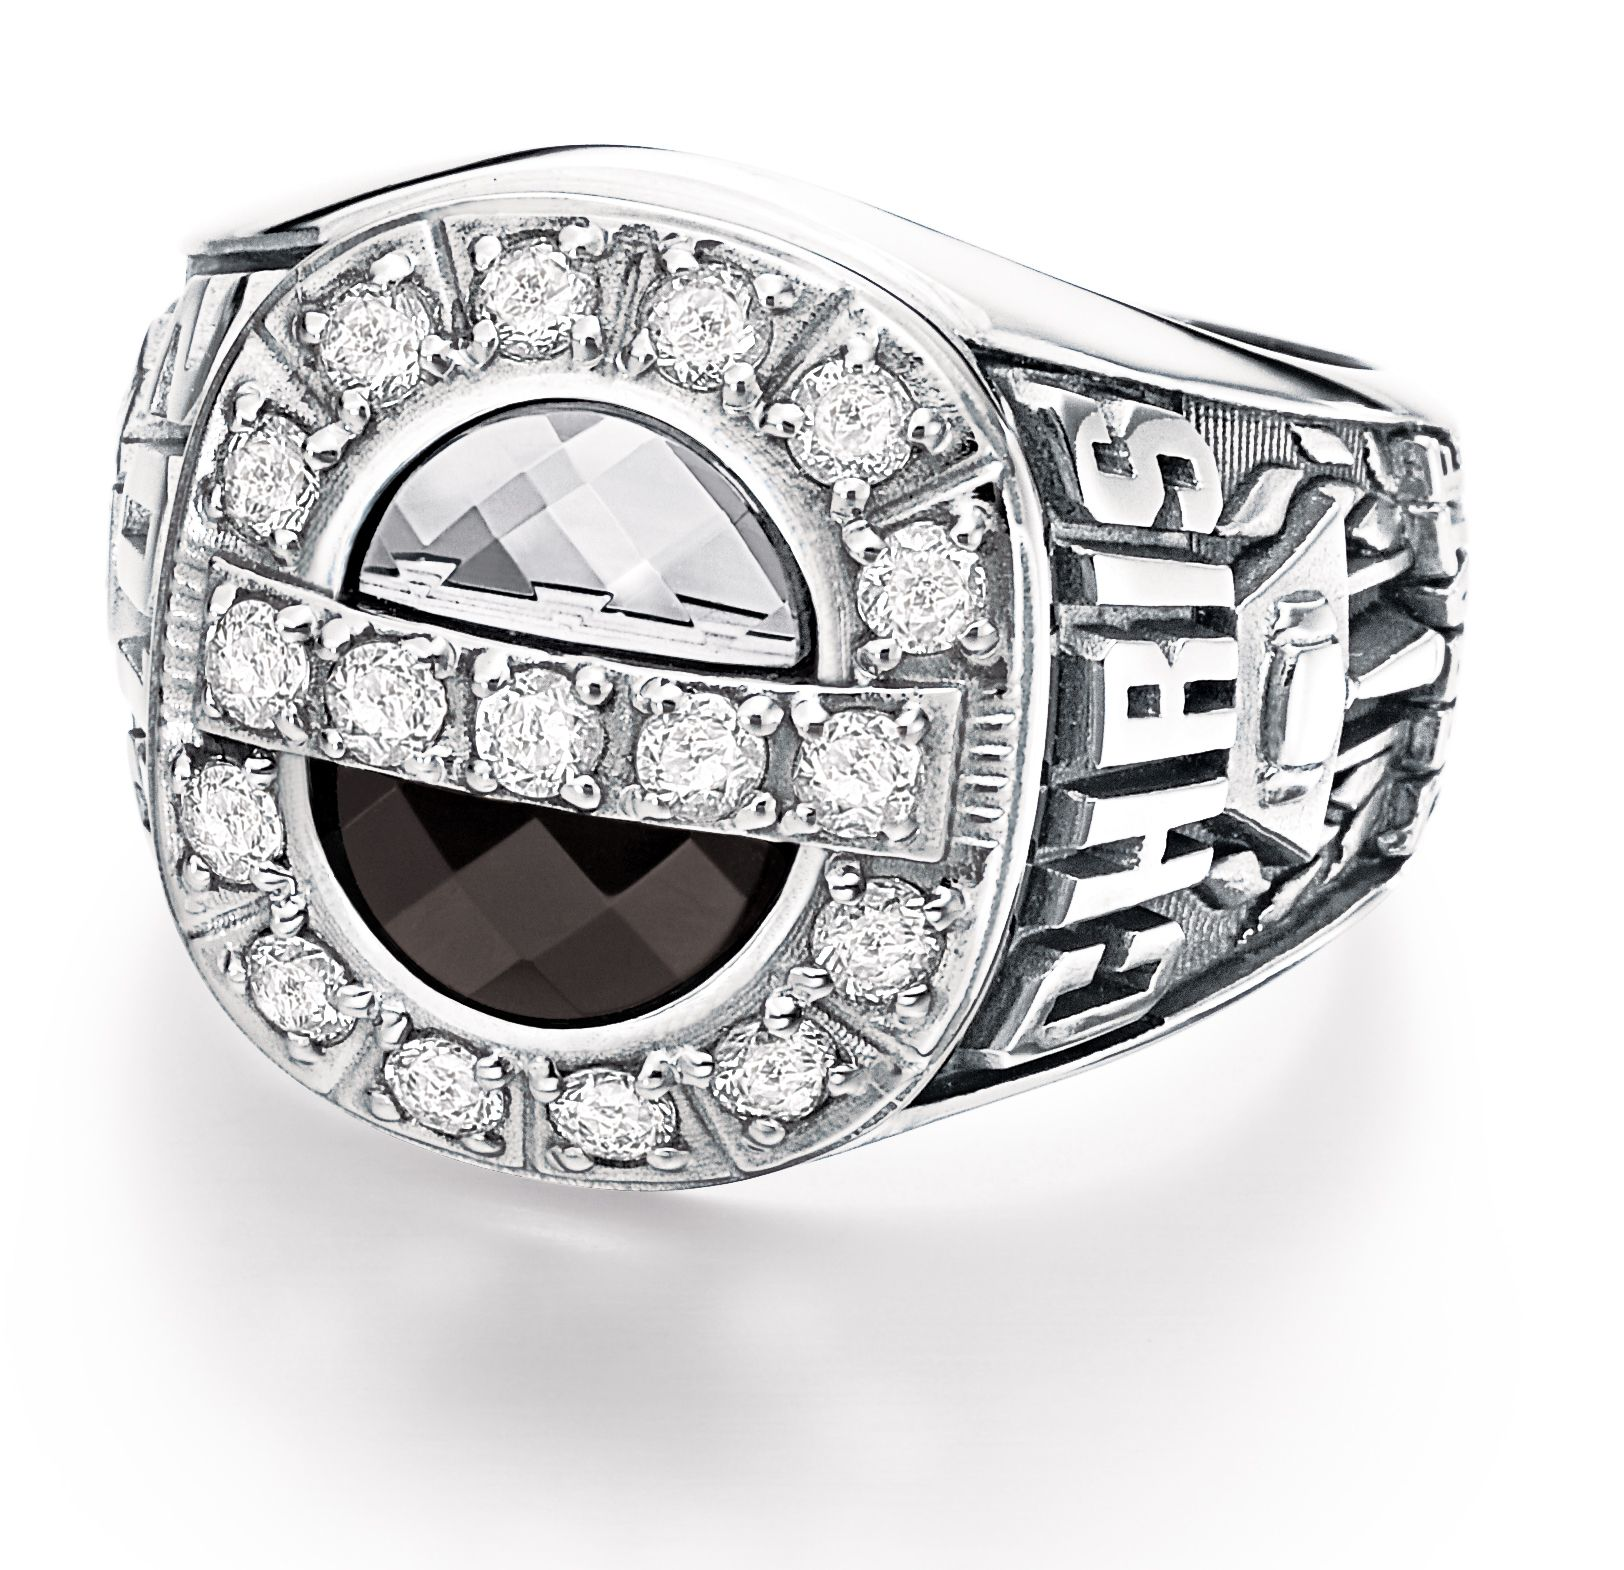 Custom Personalized Class Rings From Jostens Achiever Collection